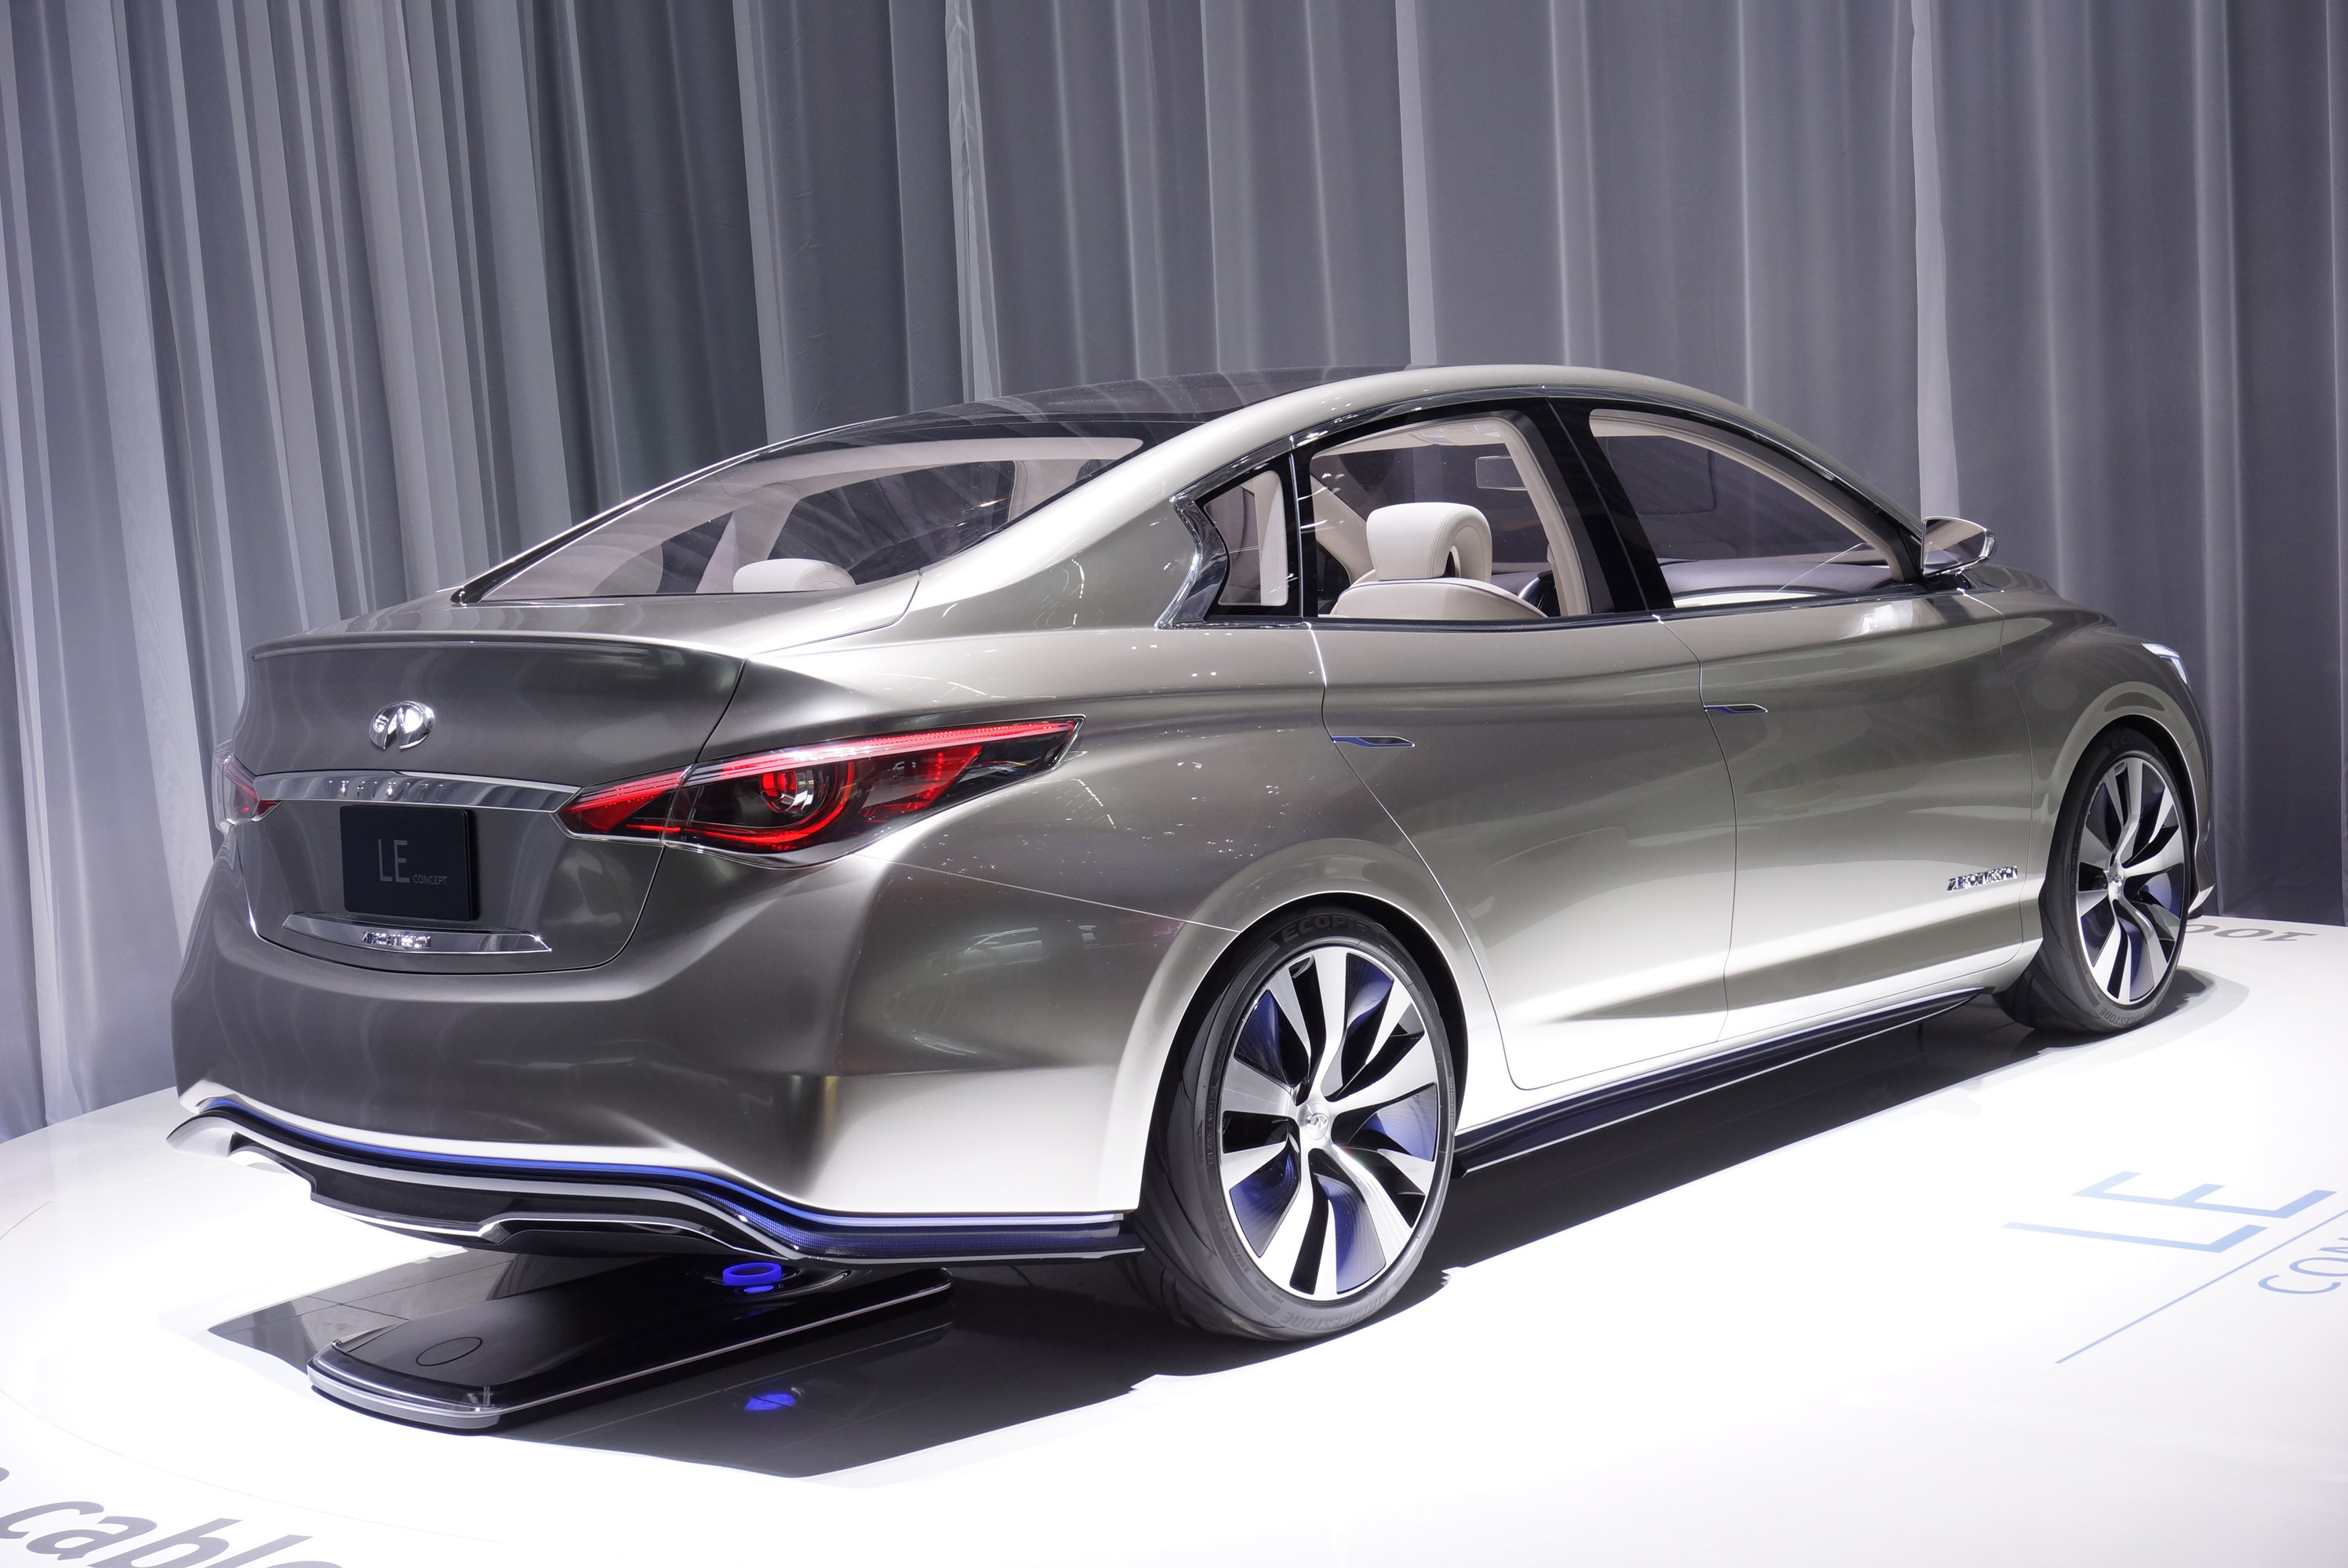 Byd car pictures 8 byd hd wallpapers infiniti le concept geneva 2013 vanachro Image collections